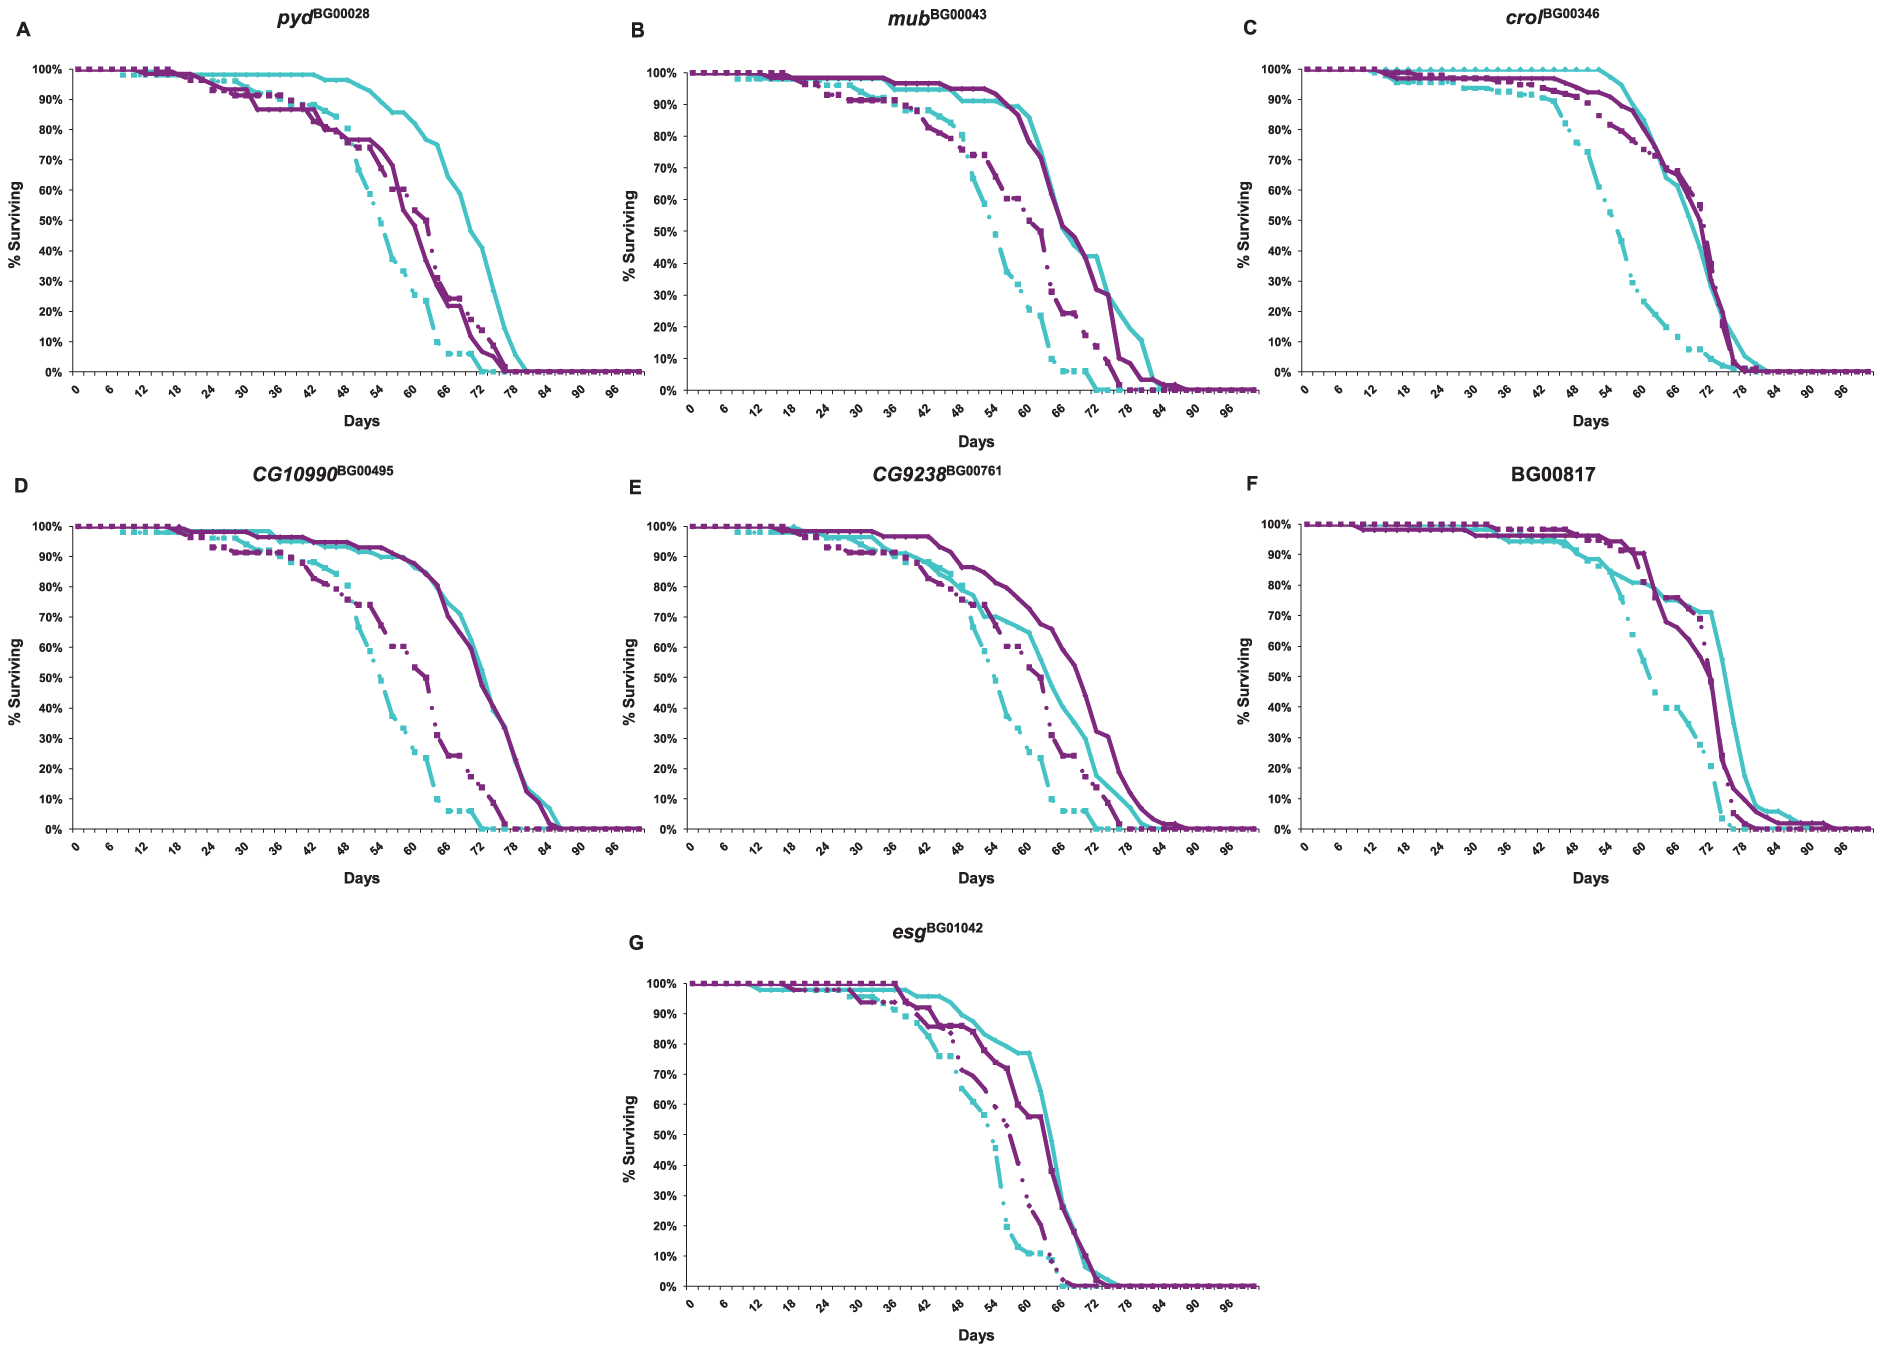 Survival curves of <i>P</i>–element insertion lines associated with increased life span (diamonds and solid lines) and the co–isogenic control line (Canton S F, squares and dashed lines) used for whole genome microarray profiling.